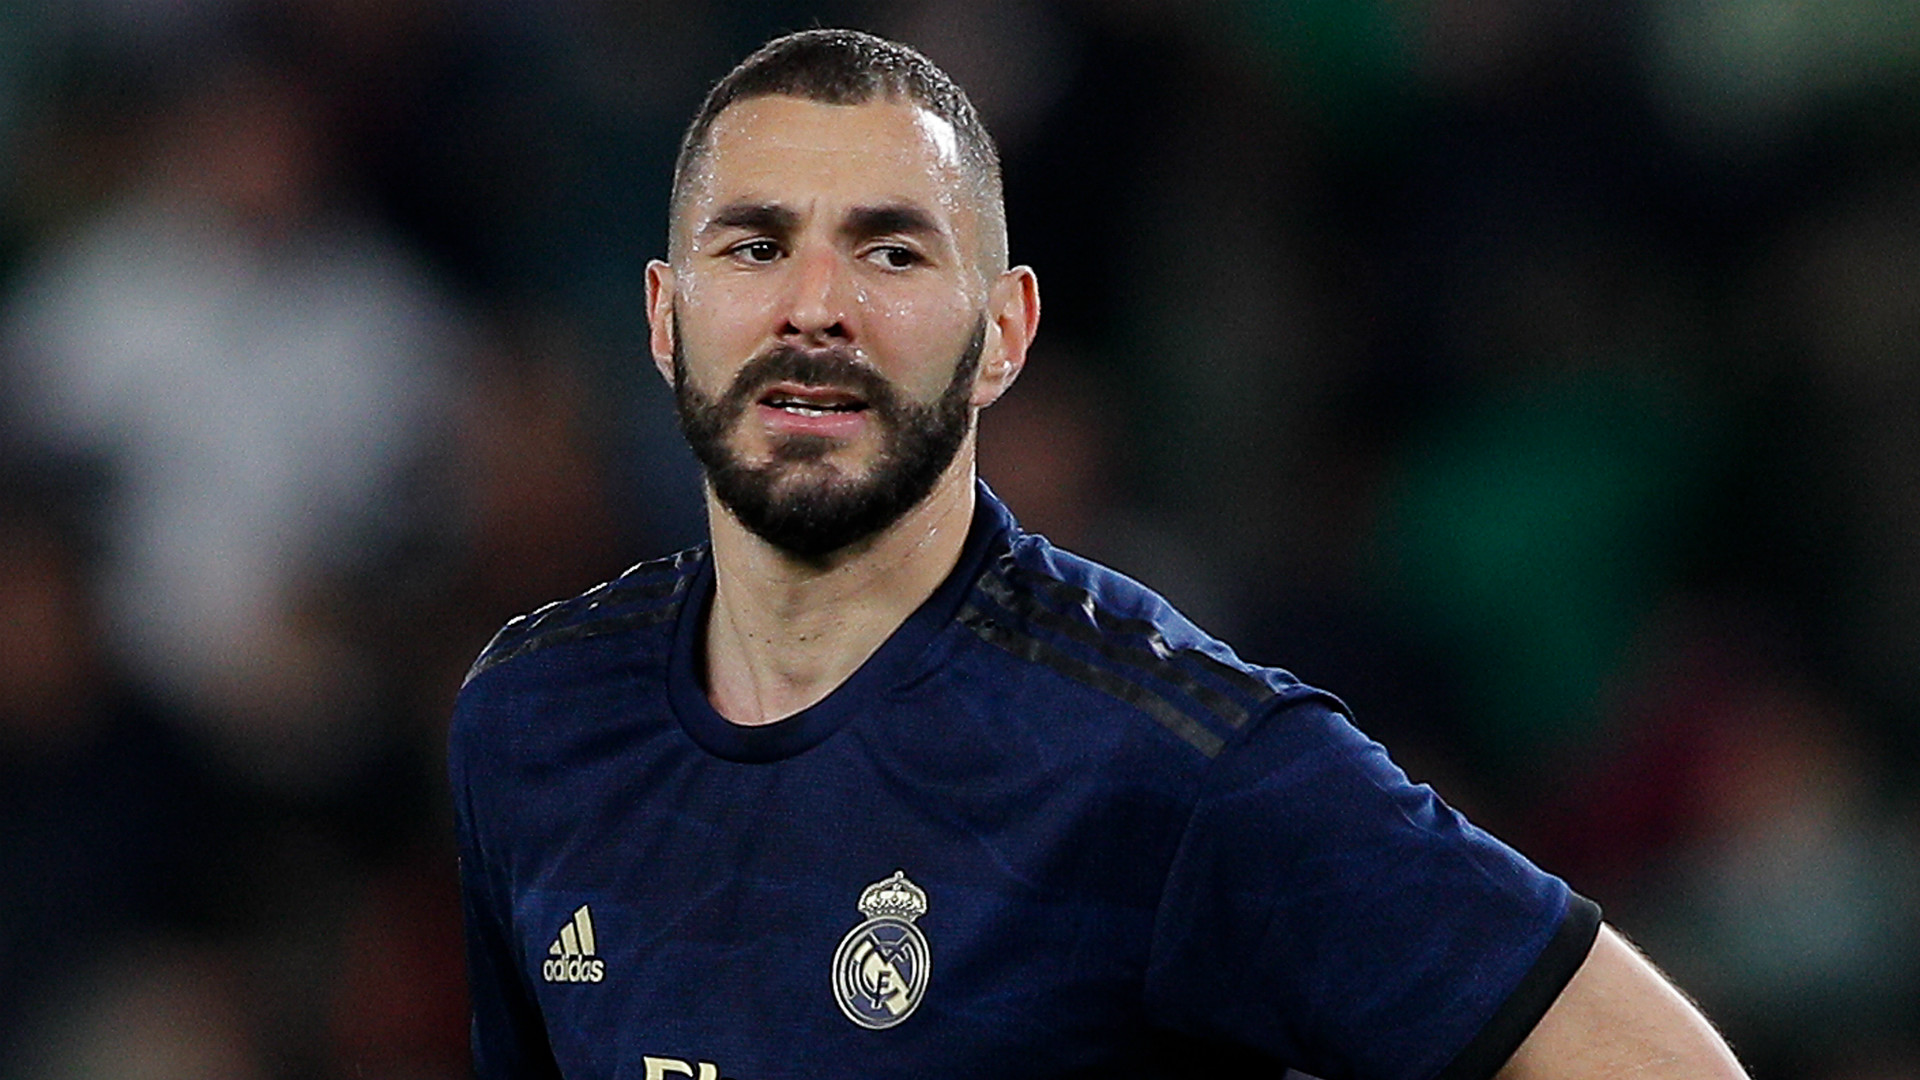 French prosecutors call for Benzema to stand trial over alleged blackmail of Valbuena for sex tape in 2015